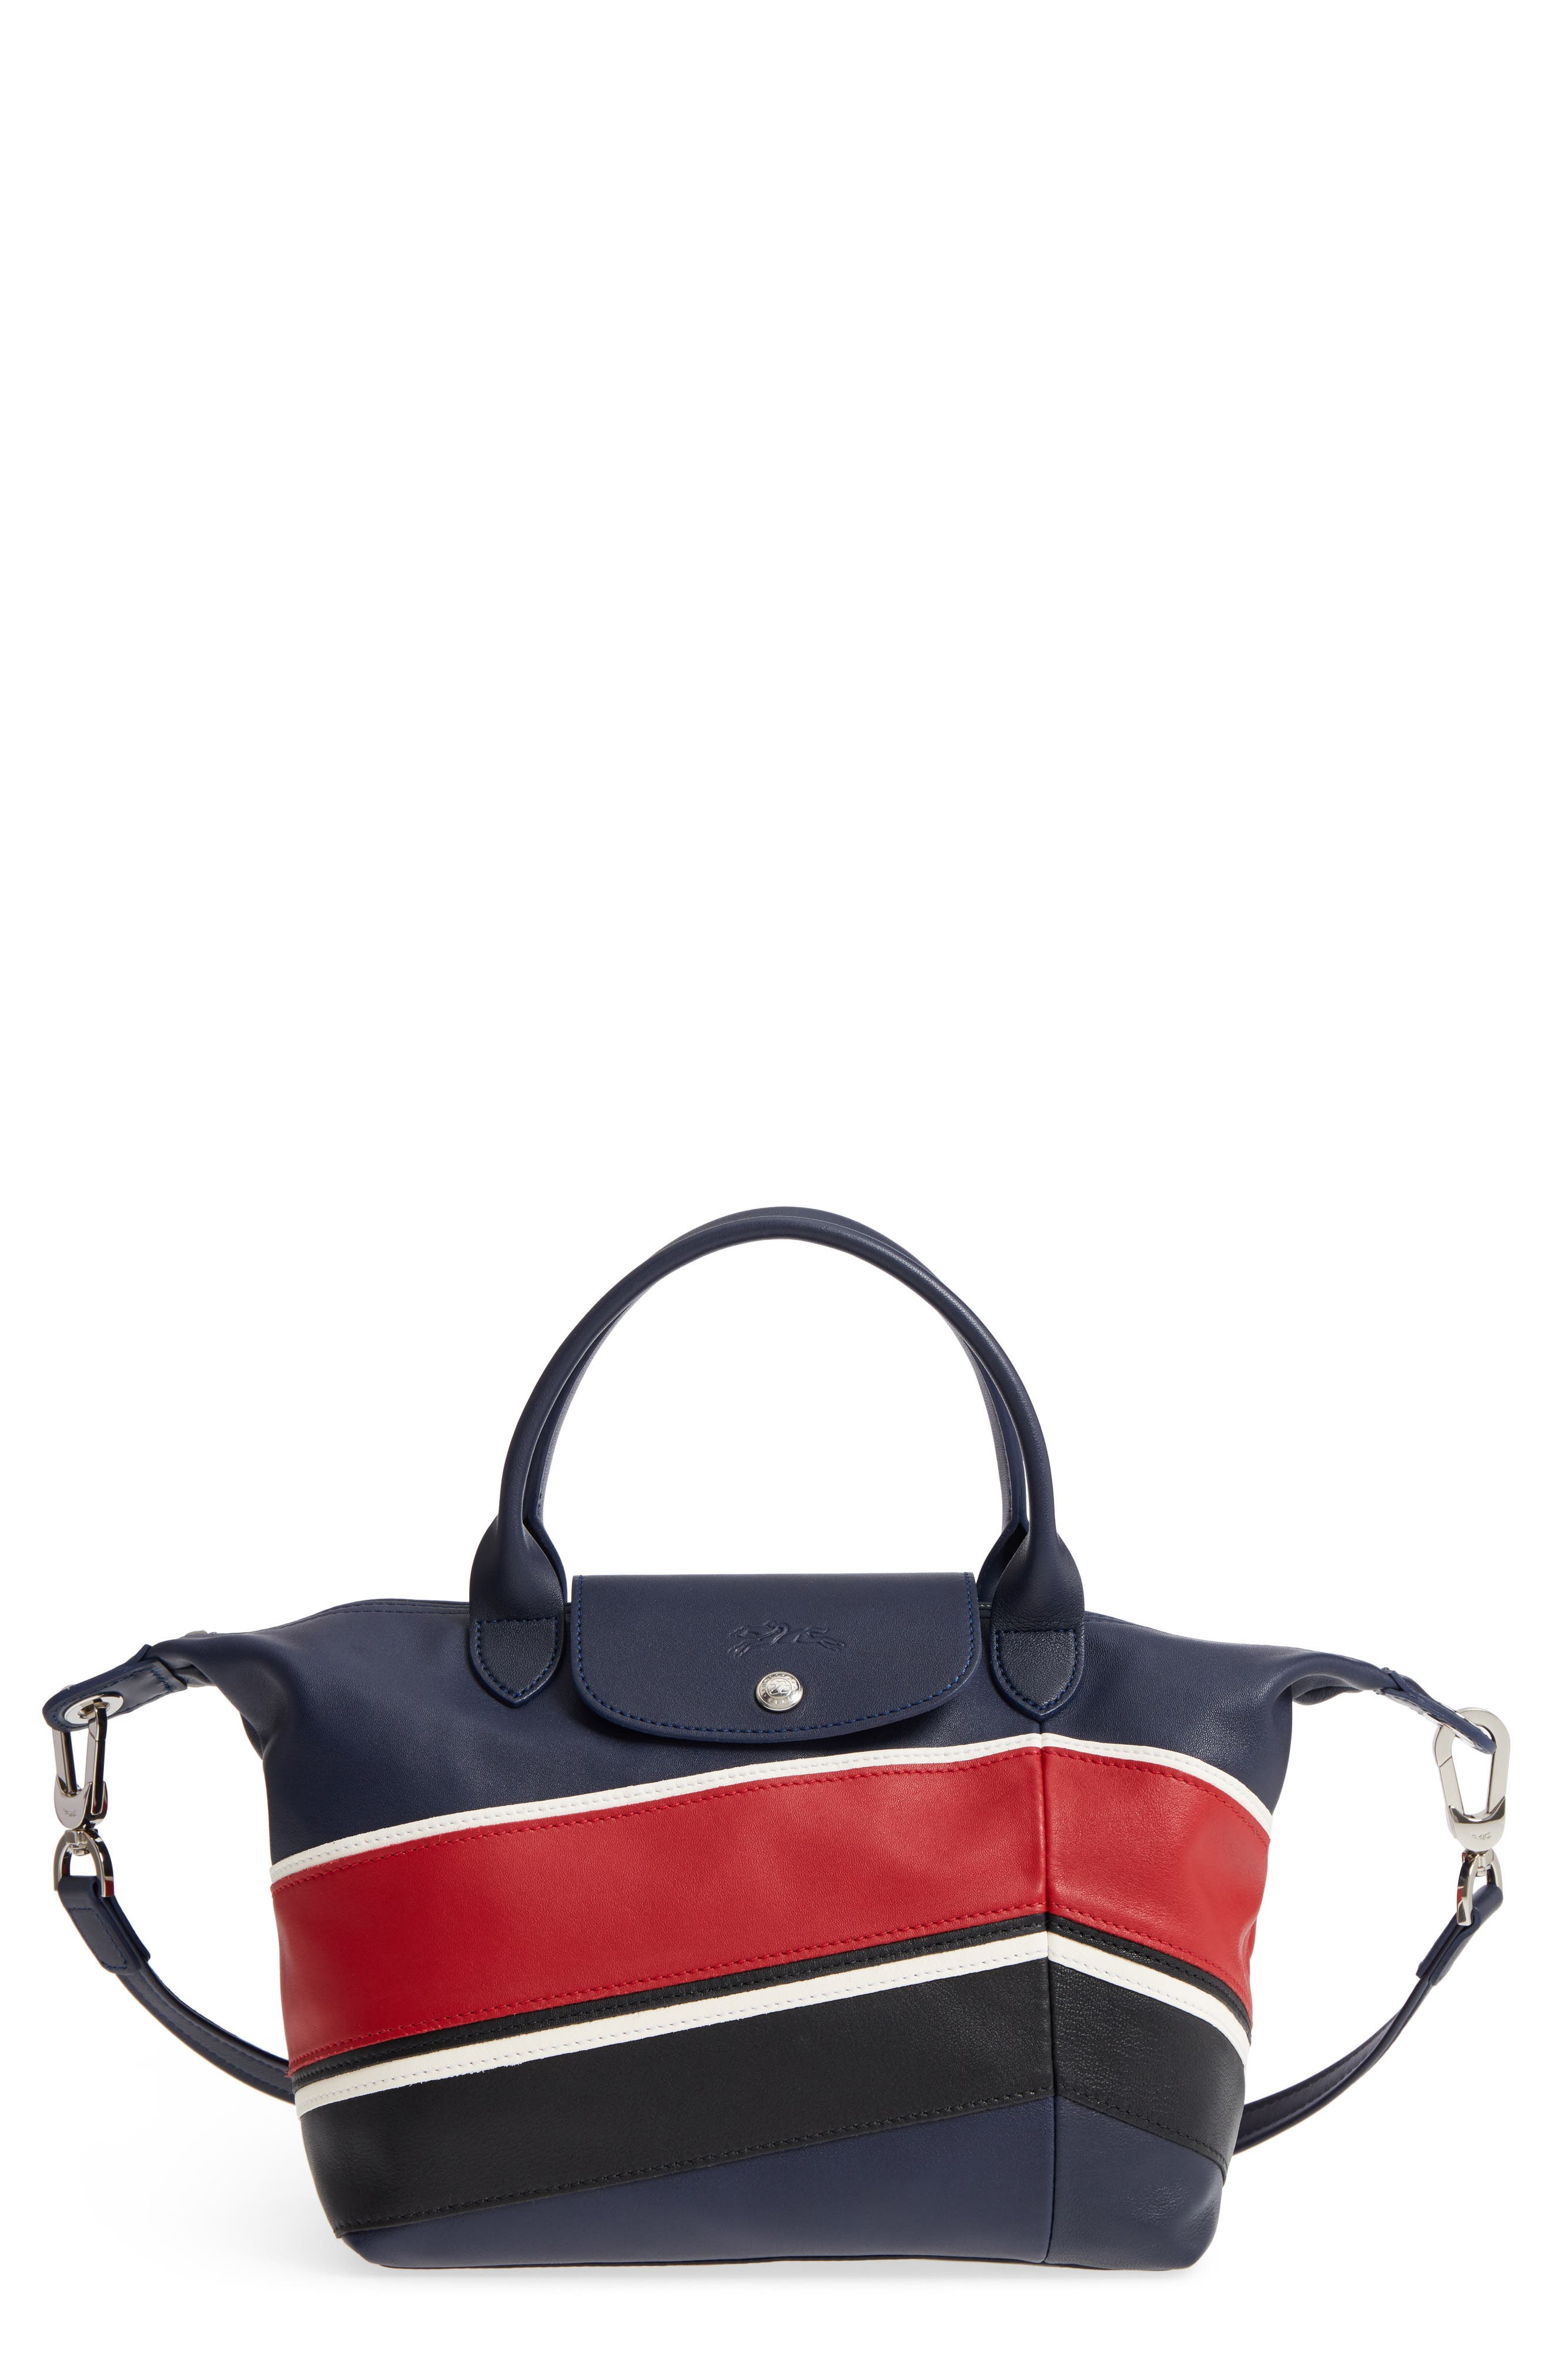 Longchamp Small Le Pliage Cuir - Chevron Top Handle Leather Tote